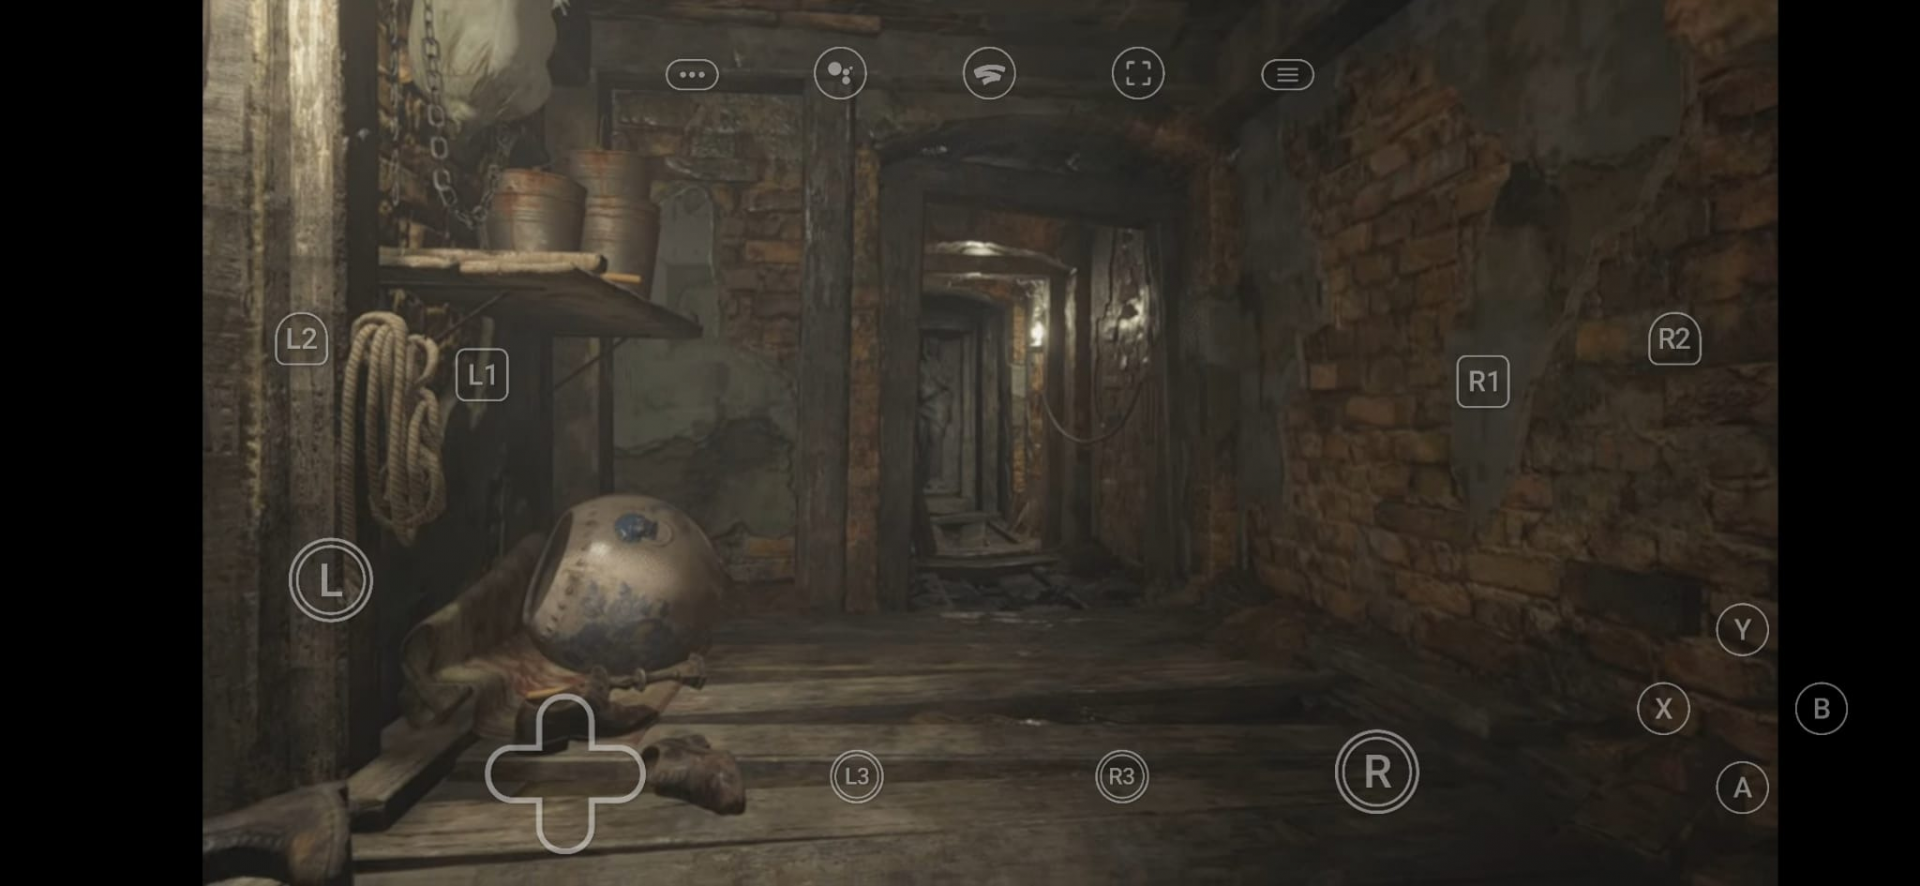 Resident Evil 8 für Android RE8 für Android The Village für Android Resident Evil the Village ...png